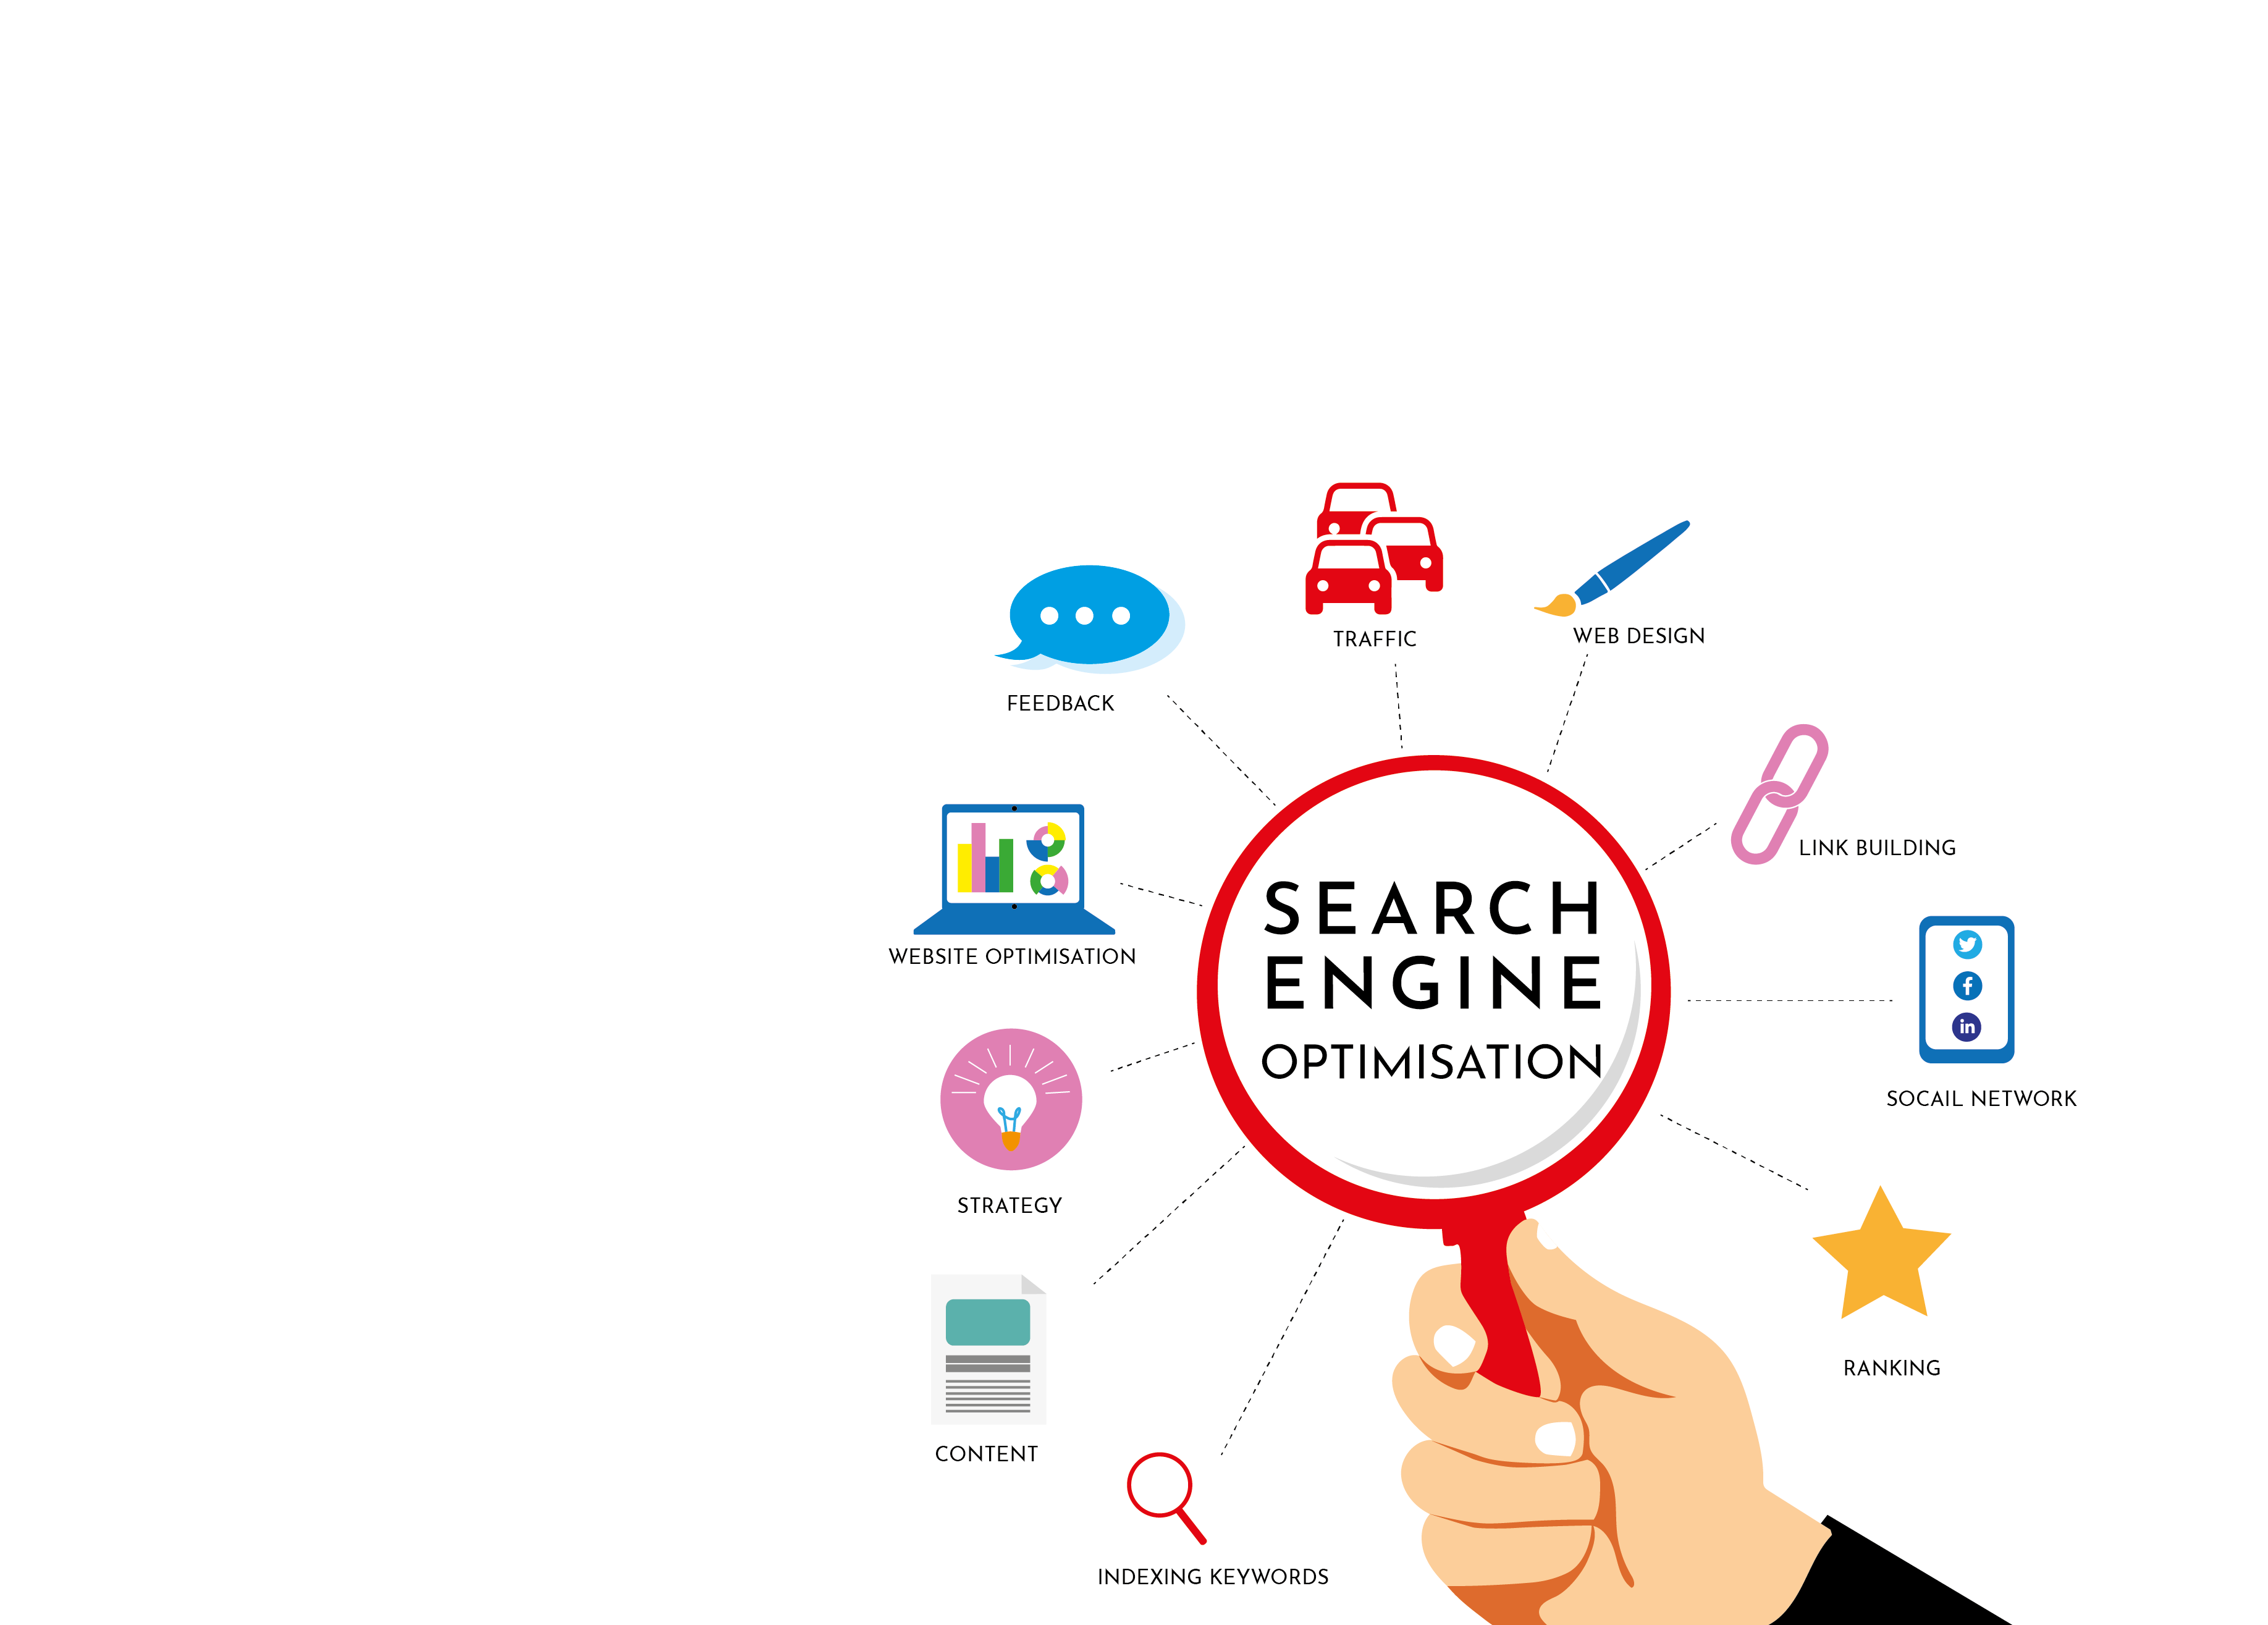 Free SEO Audit to your inbox in minutes